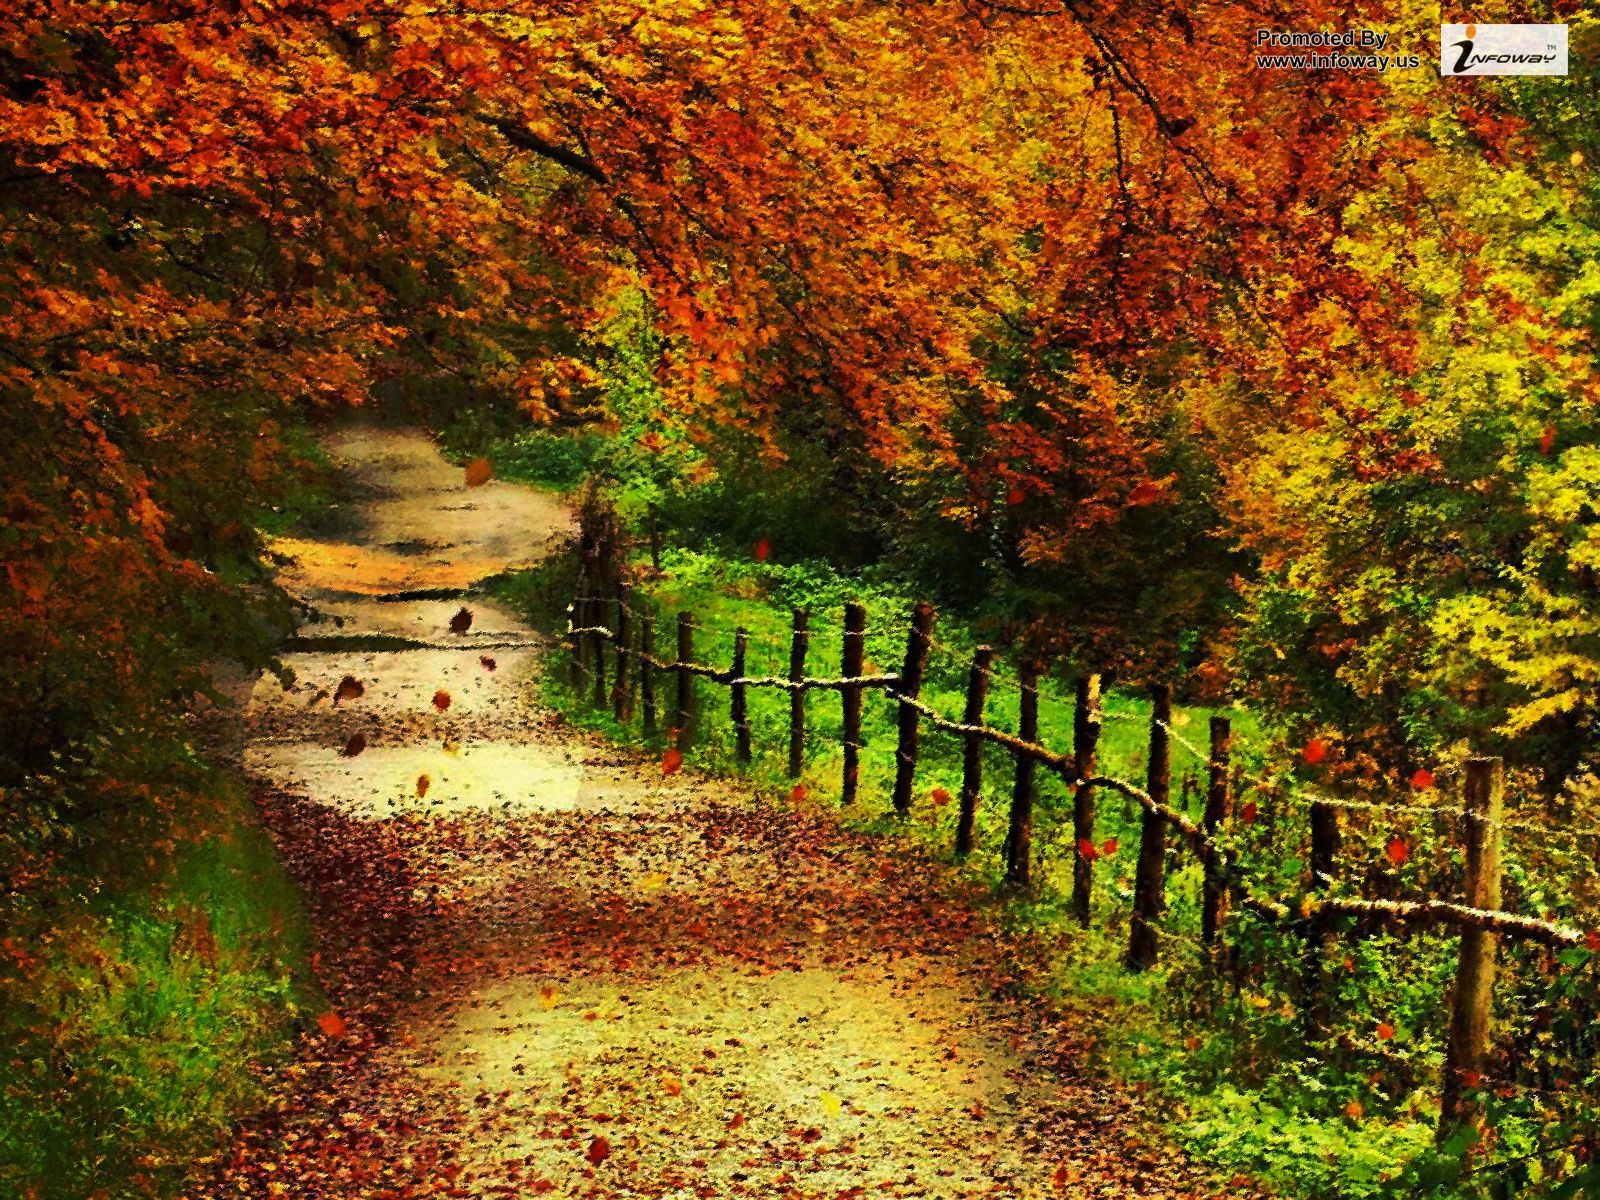 Free Download Beautiful Autumn Scenery Wallpapers 01 1600x1200 For Your Desktop Mobile Tablet Explore 62 Fall Scenery Wallpapers Free Fall Wallpapers For Desktop Free Desktop Wallpaper Autumn Scenery